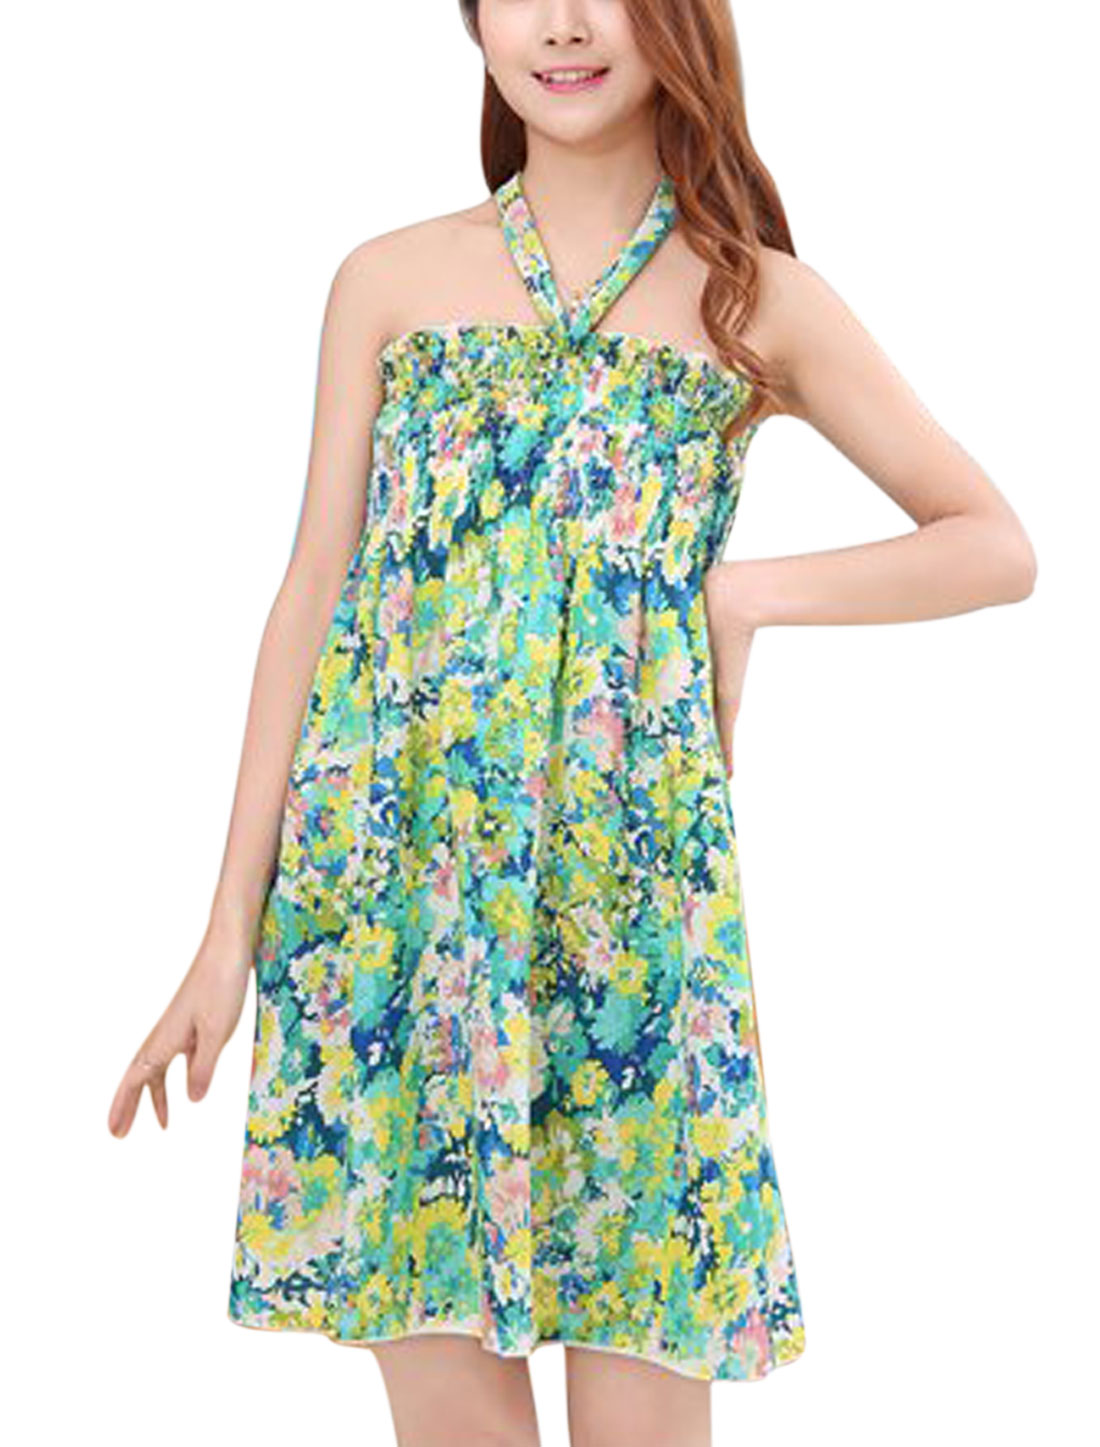 Ladies Halter Neck Floral Print Smocked Bust Ruched Dresses Aqua Yellow S